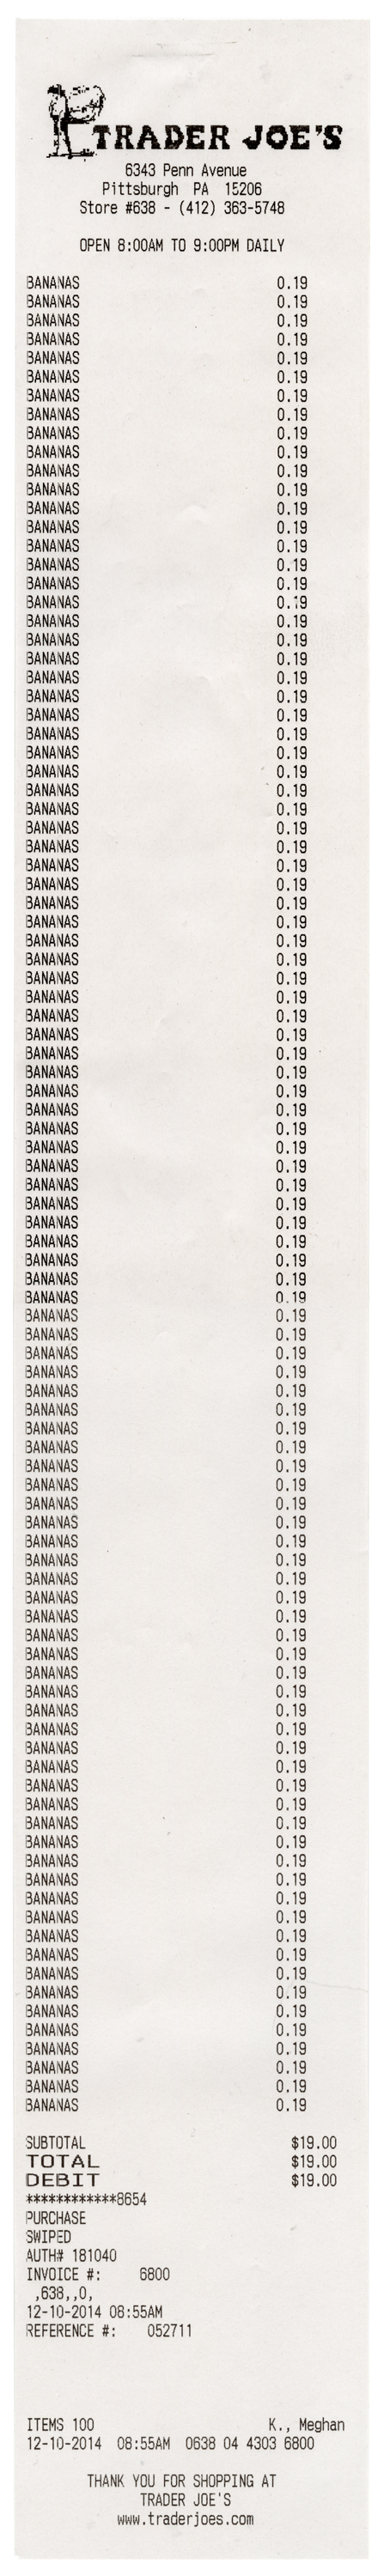 "100 Bananas 2014 / thermal paper / 23"" x 3"" / checkout clerk; Meghan K."